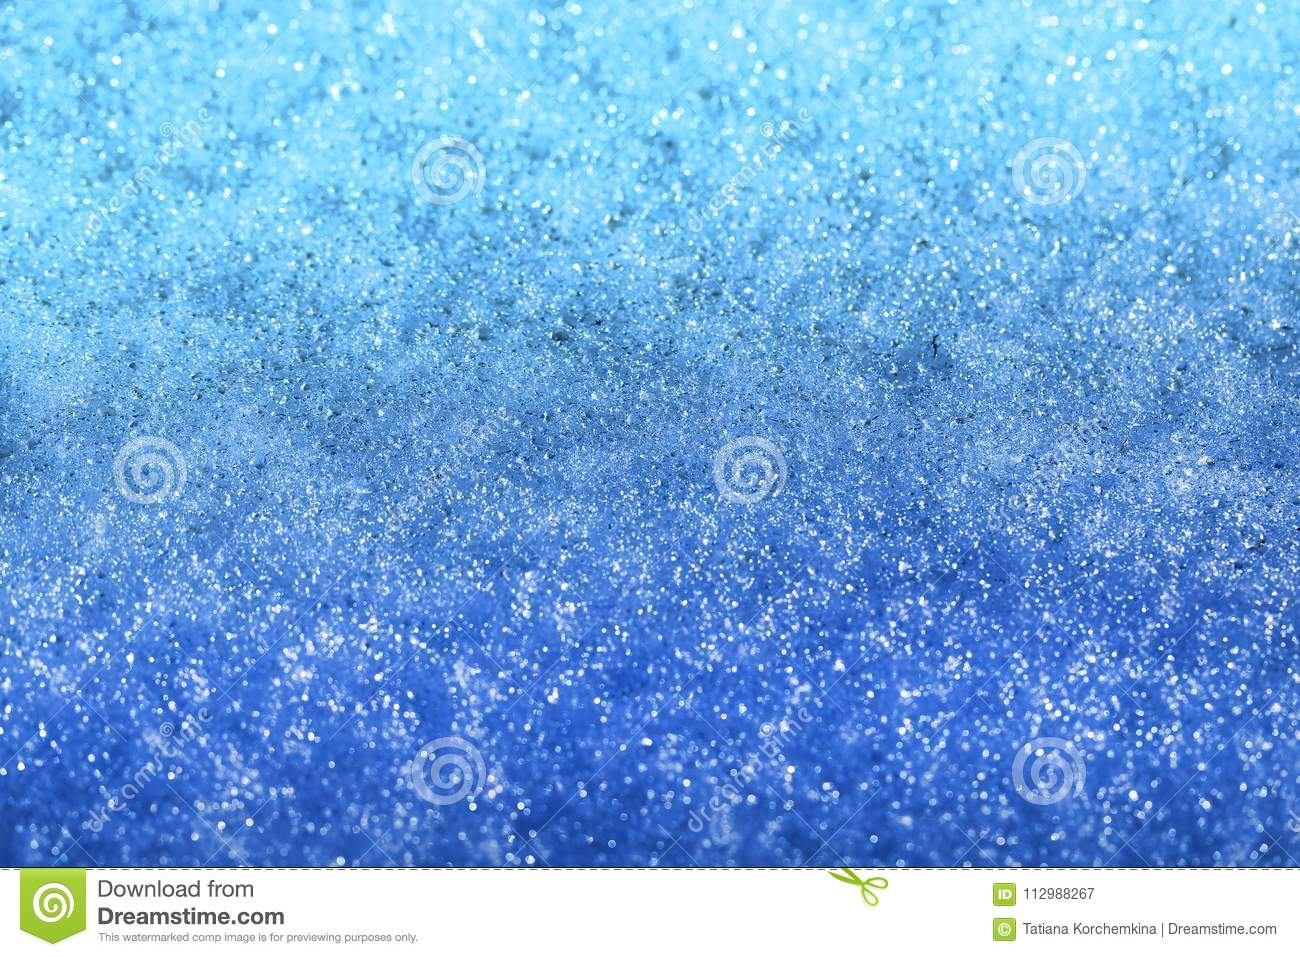 Photo of a background of blue melting snow